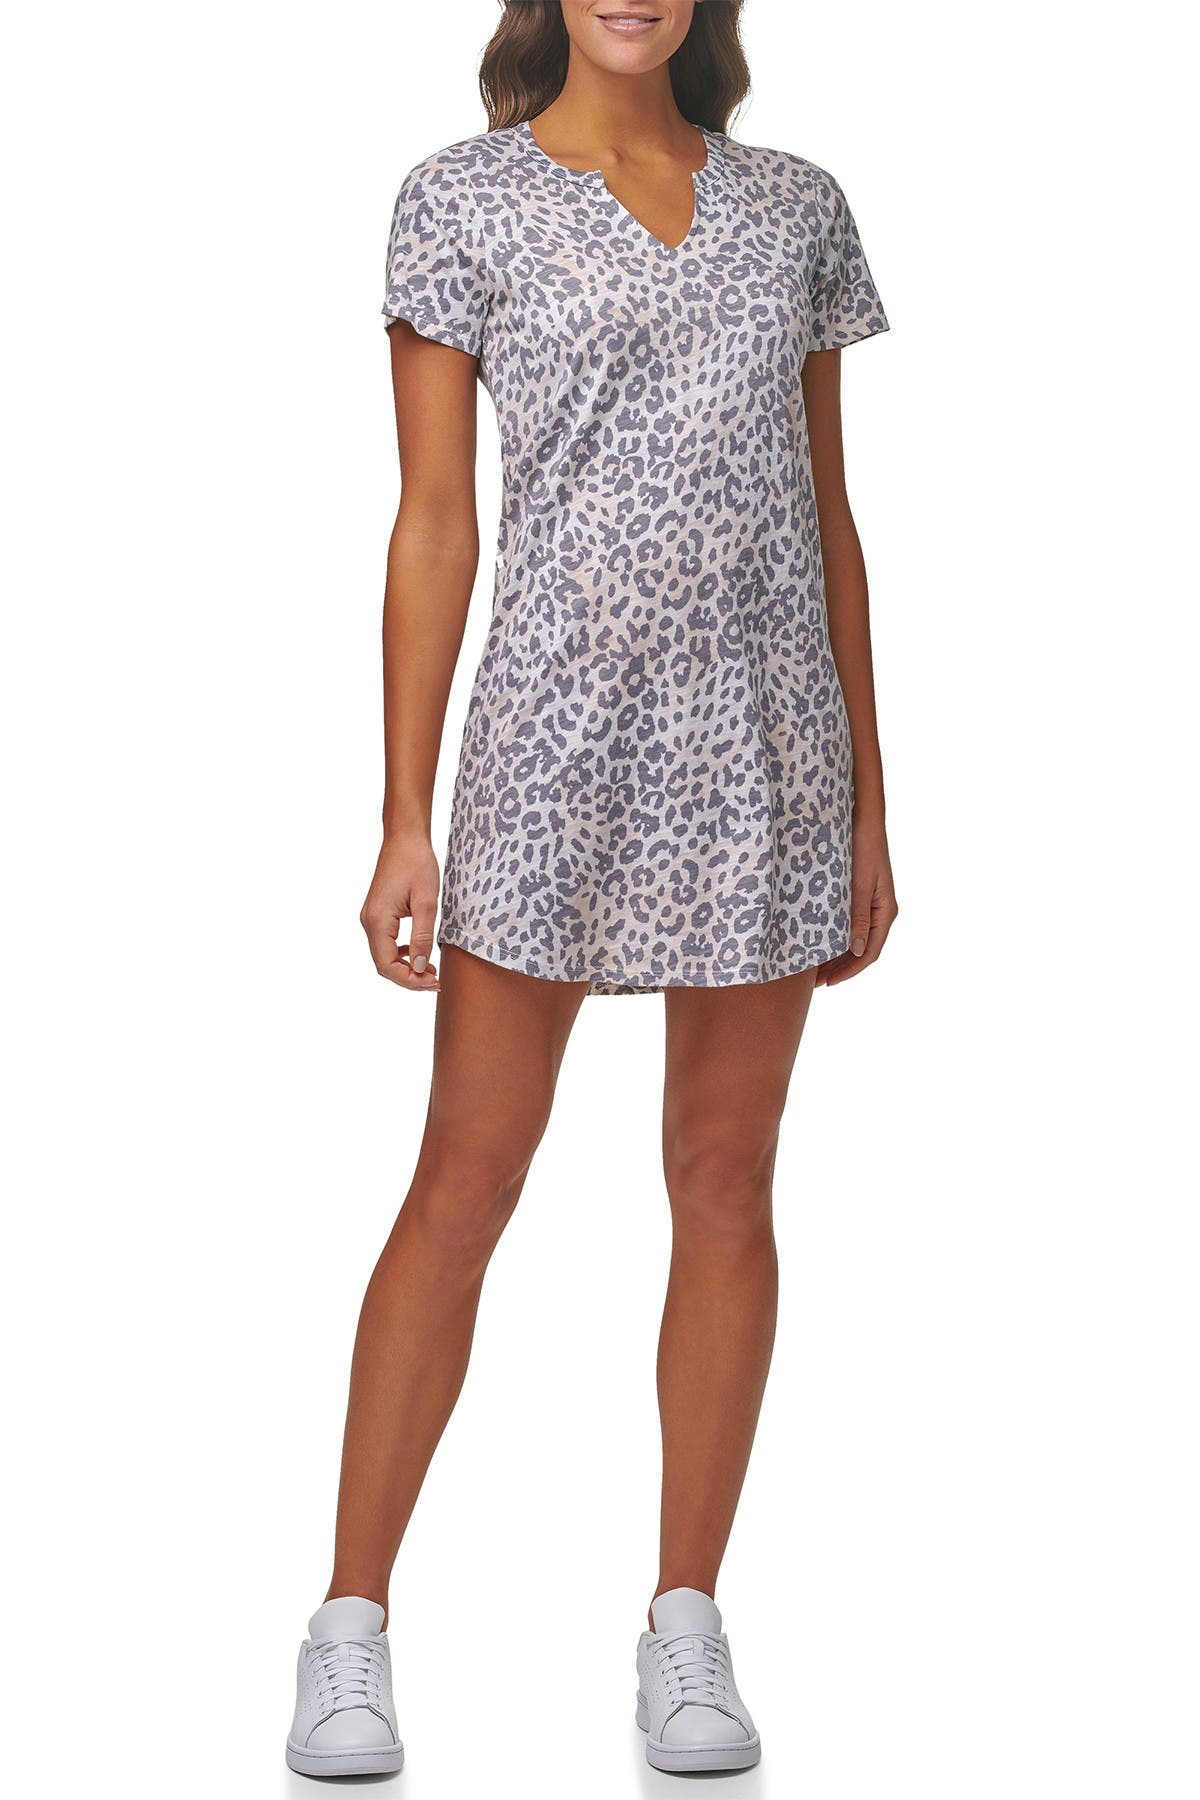 Image of MARC NEW YORK PERFORMANCE Floral Split Neck Short Sleeve Dress